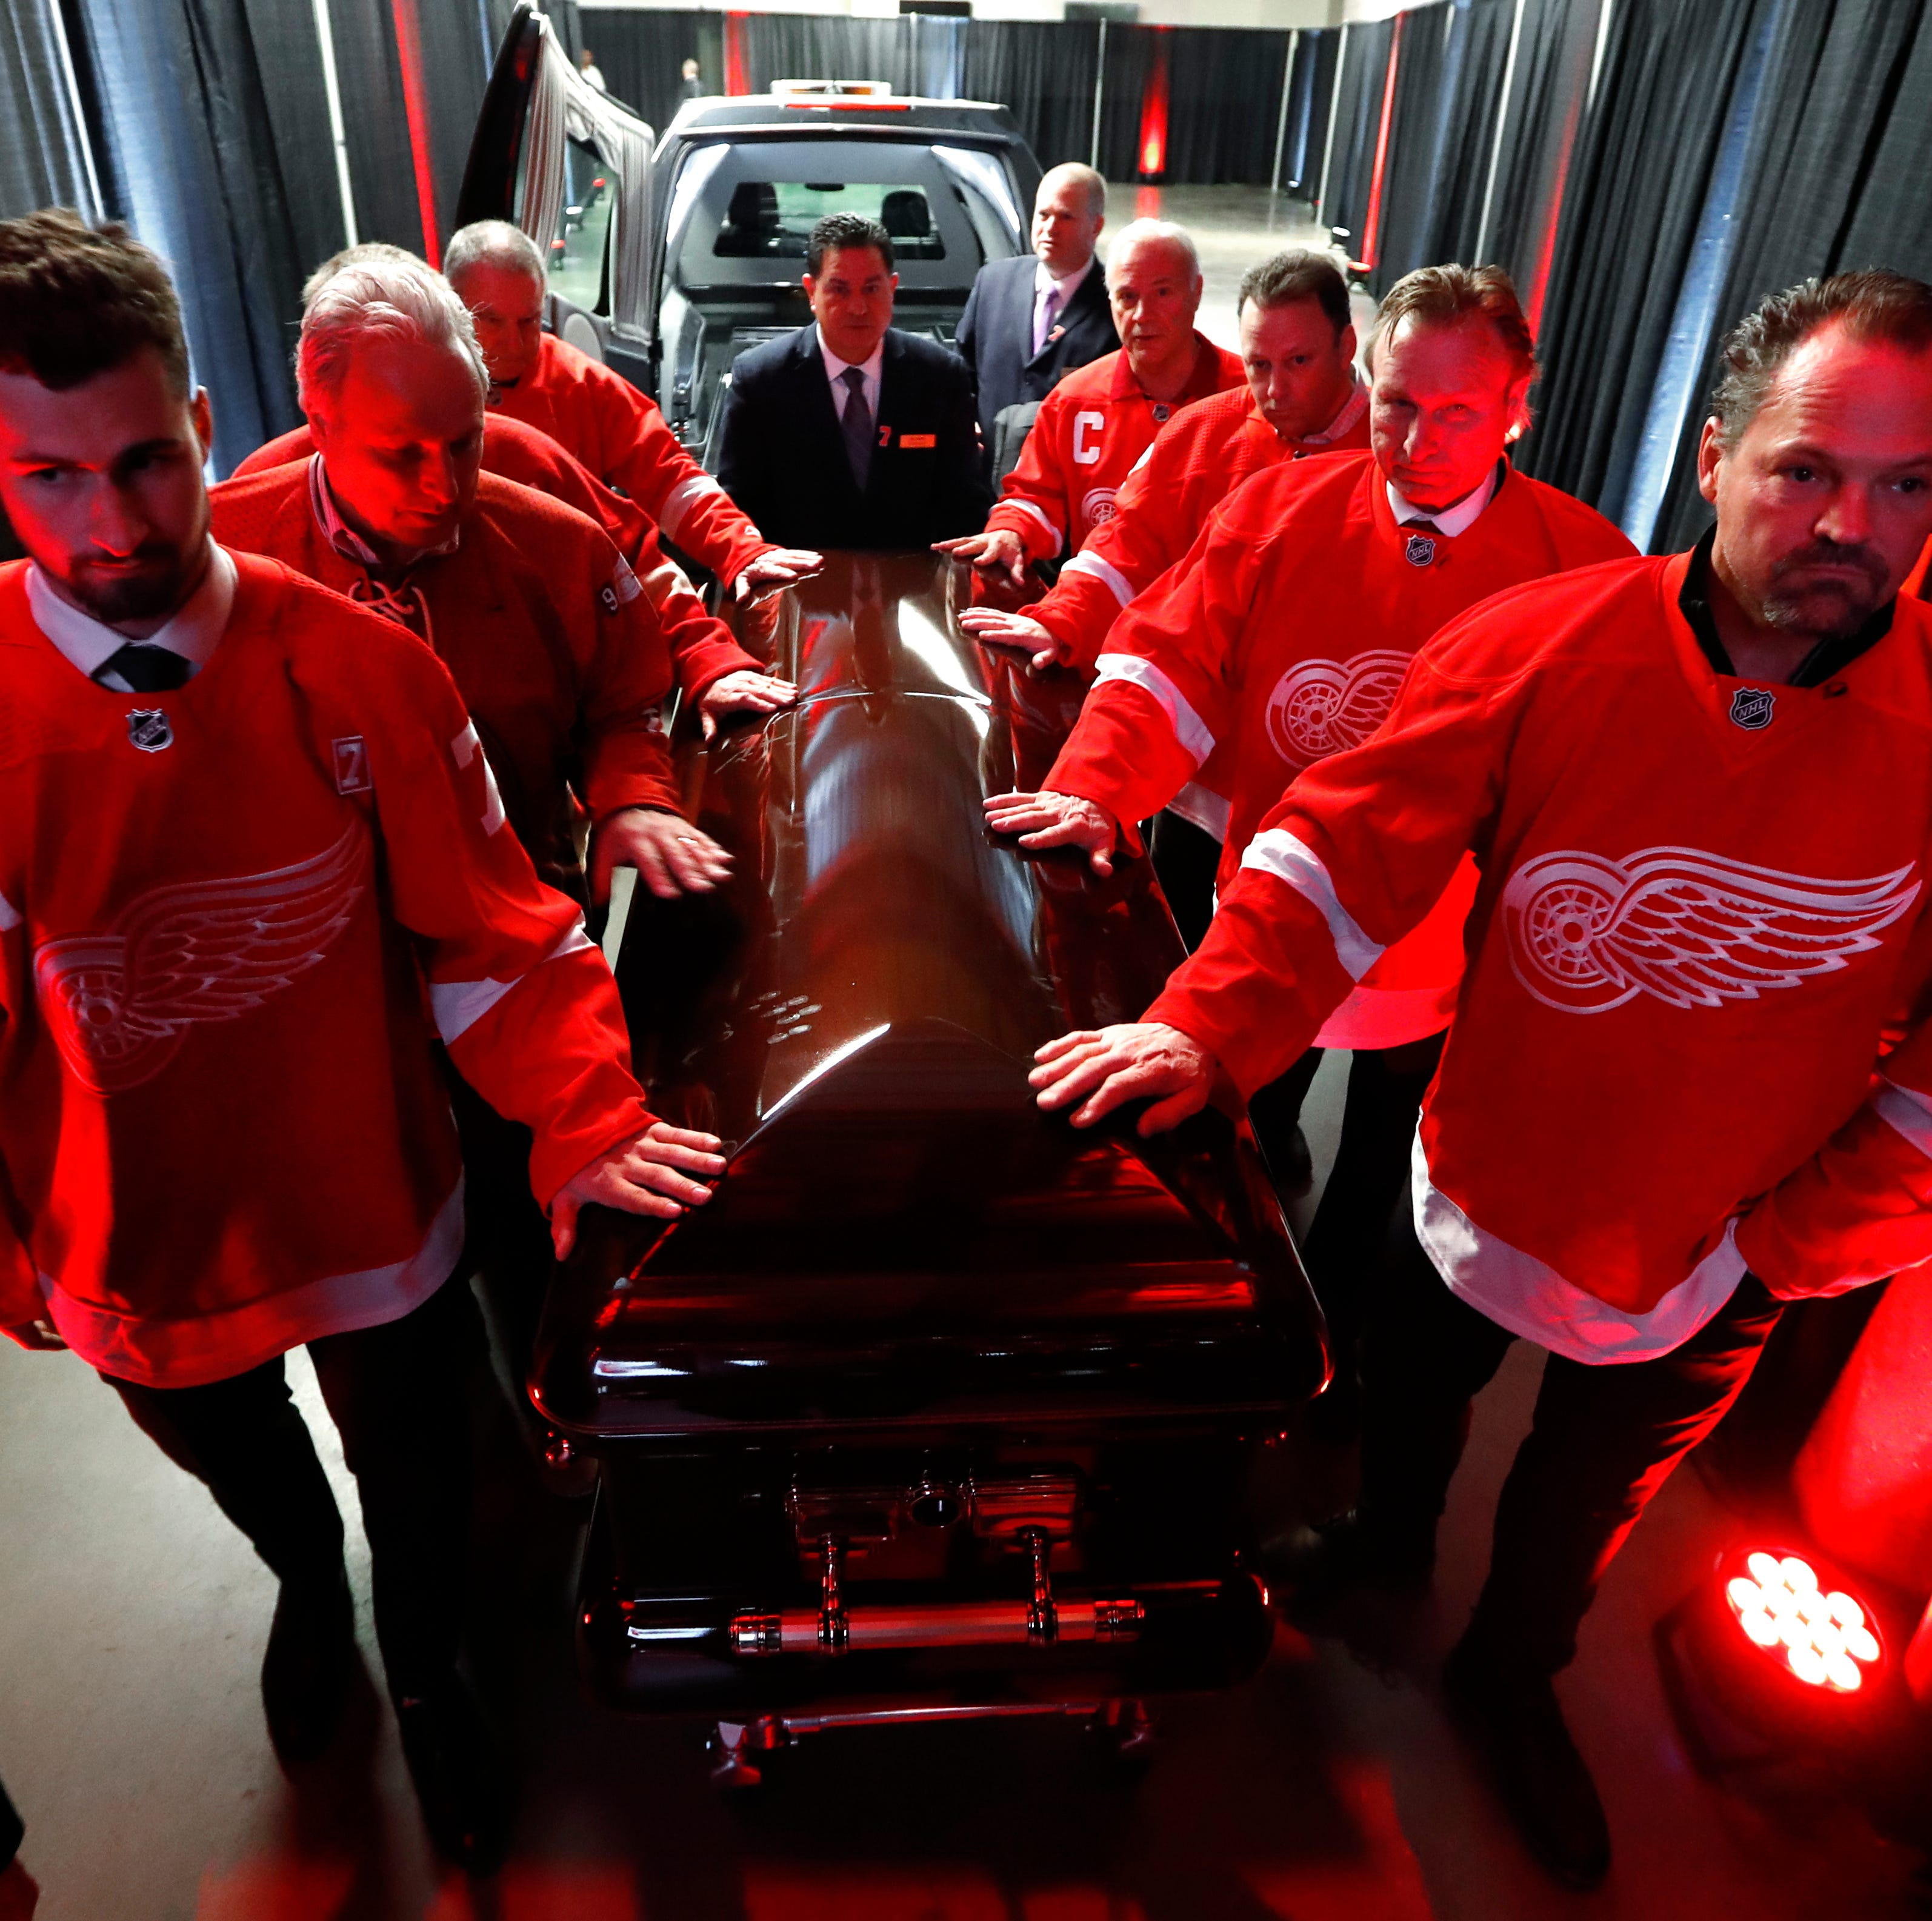 Spirit of Hockeytown glows at Ted Lindsay memorial. And it was stunning